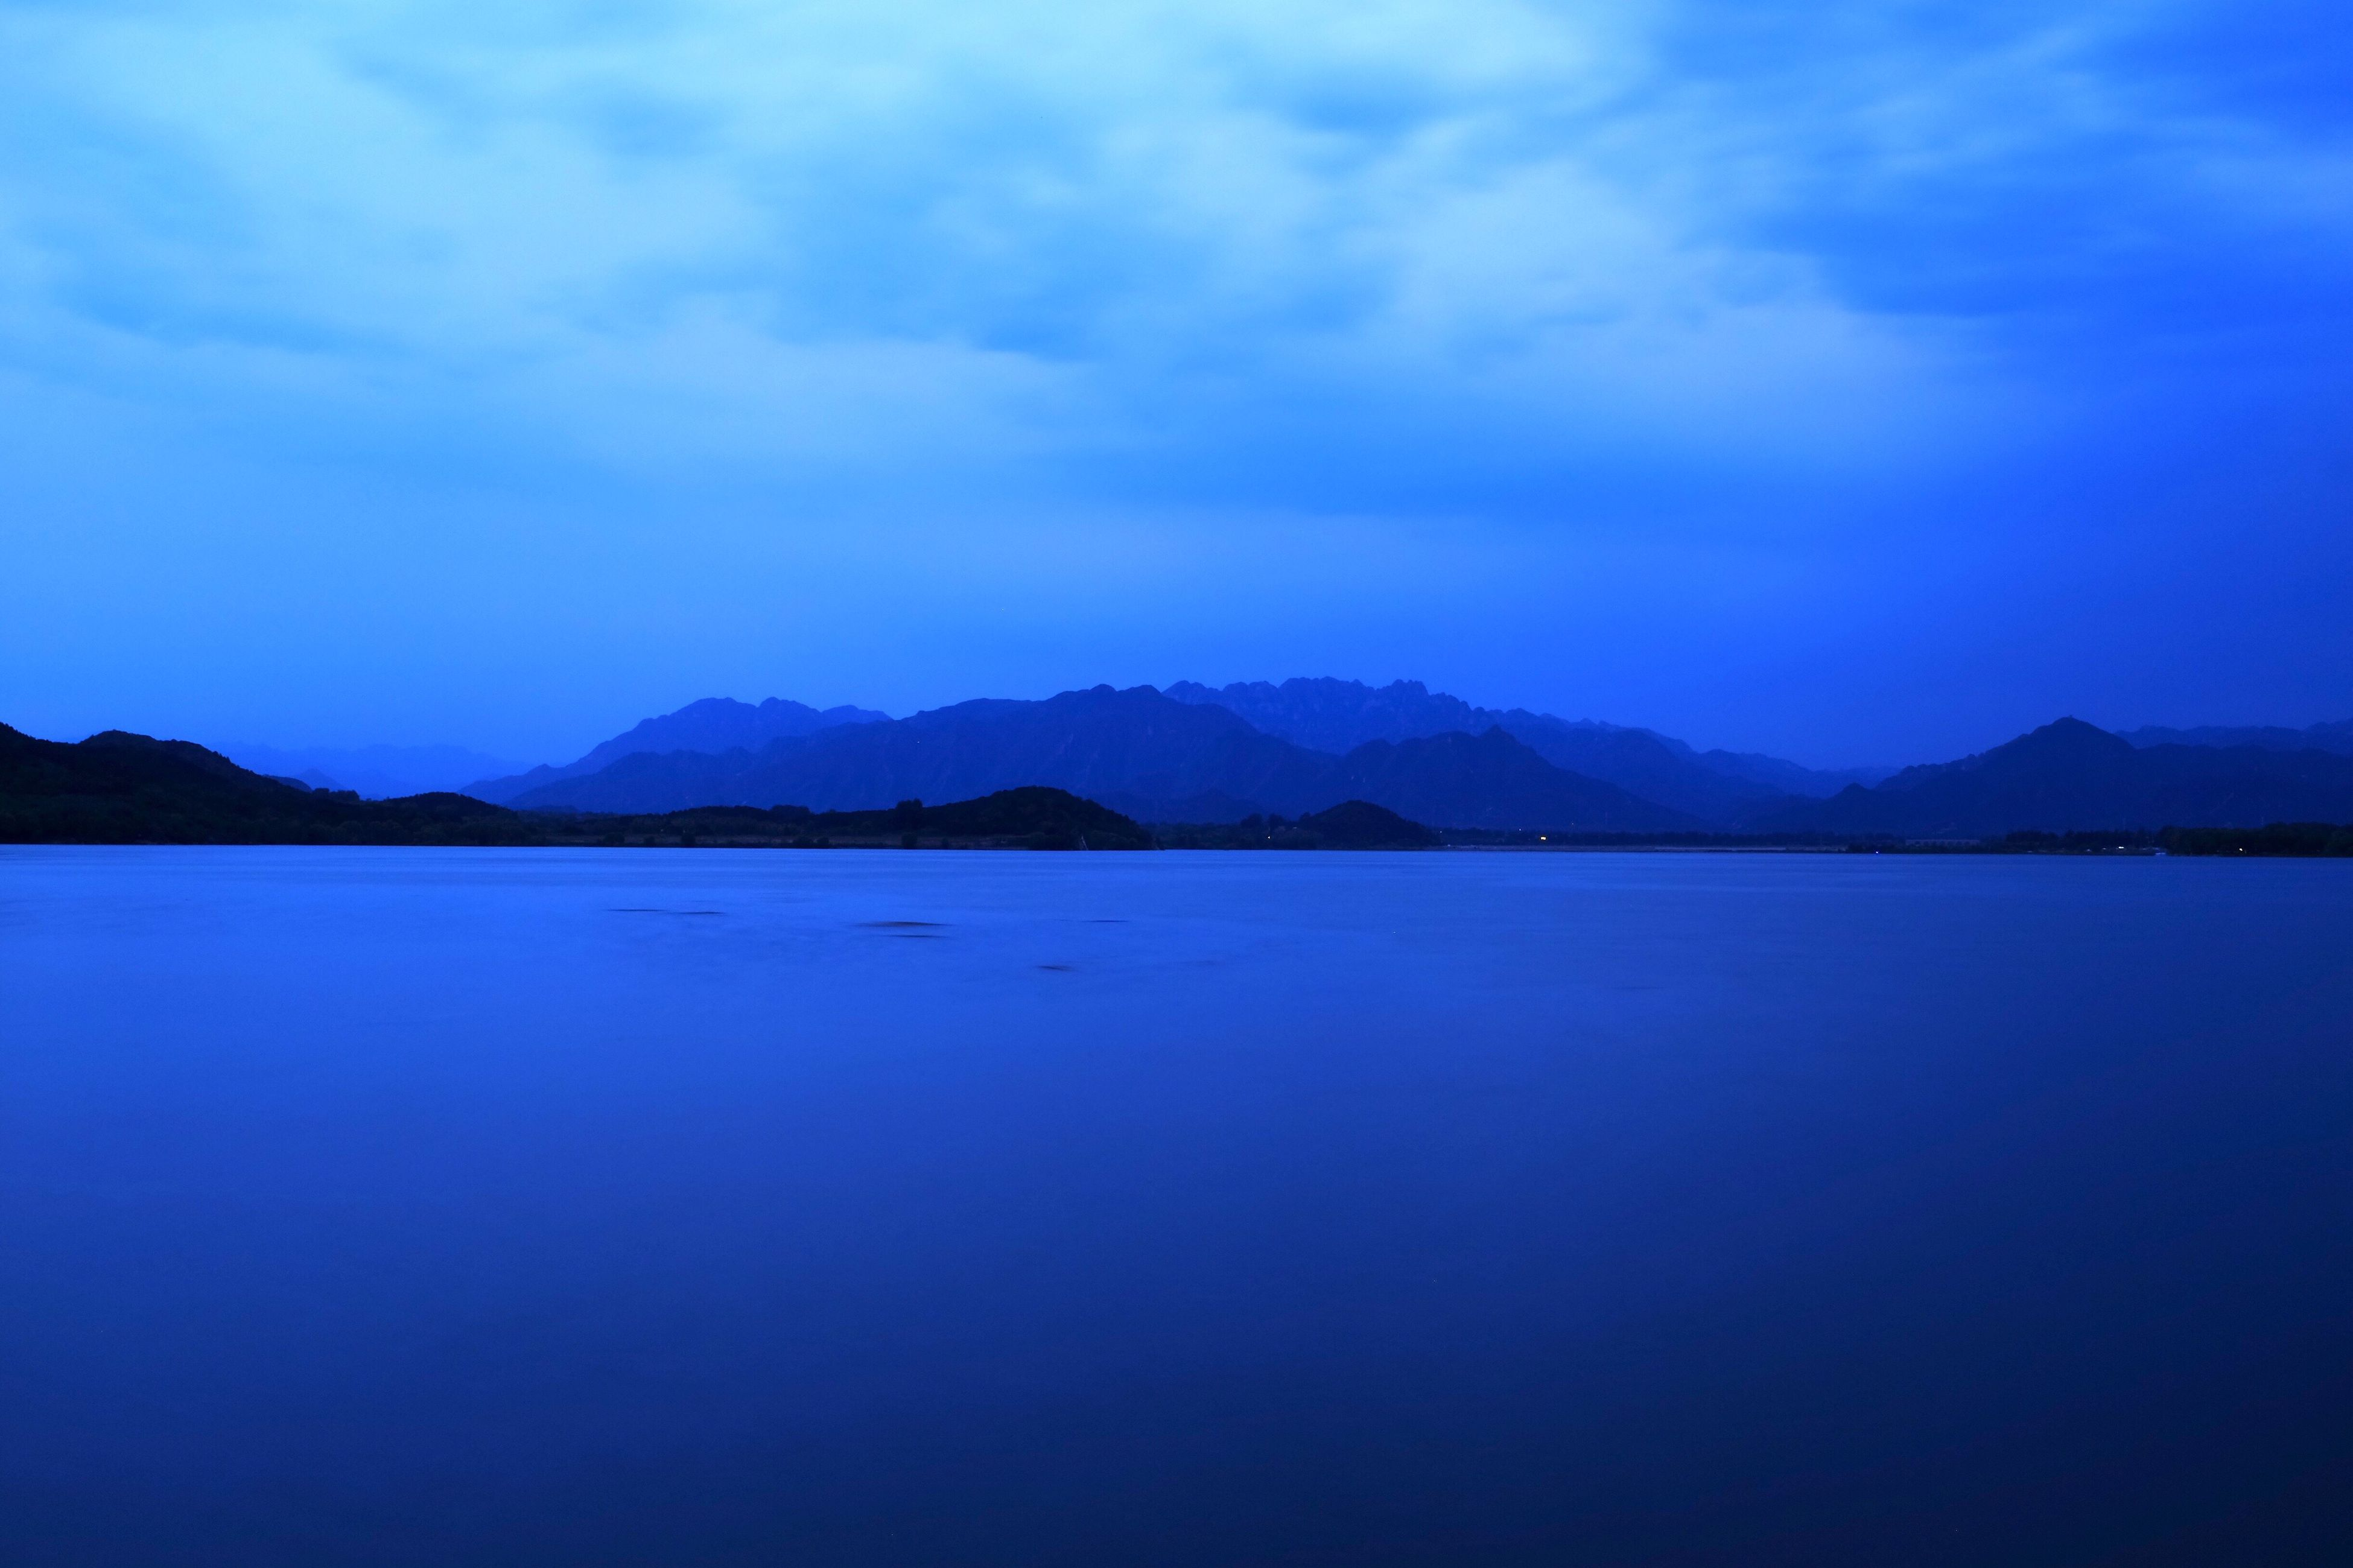 tranquil scene, water, scenics, tranquility, mountain, beauty in nature, sky, mountain range, blue, nature, lake, cloud - sky, waterfront, idyllic, reflection, sea, cloud, calm, dusk, outdoors